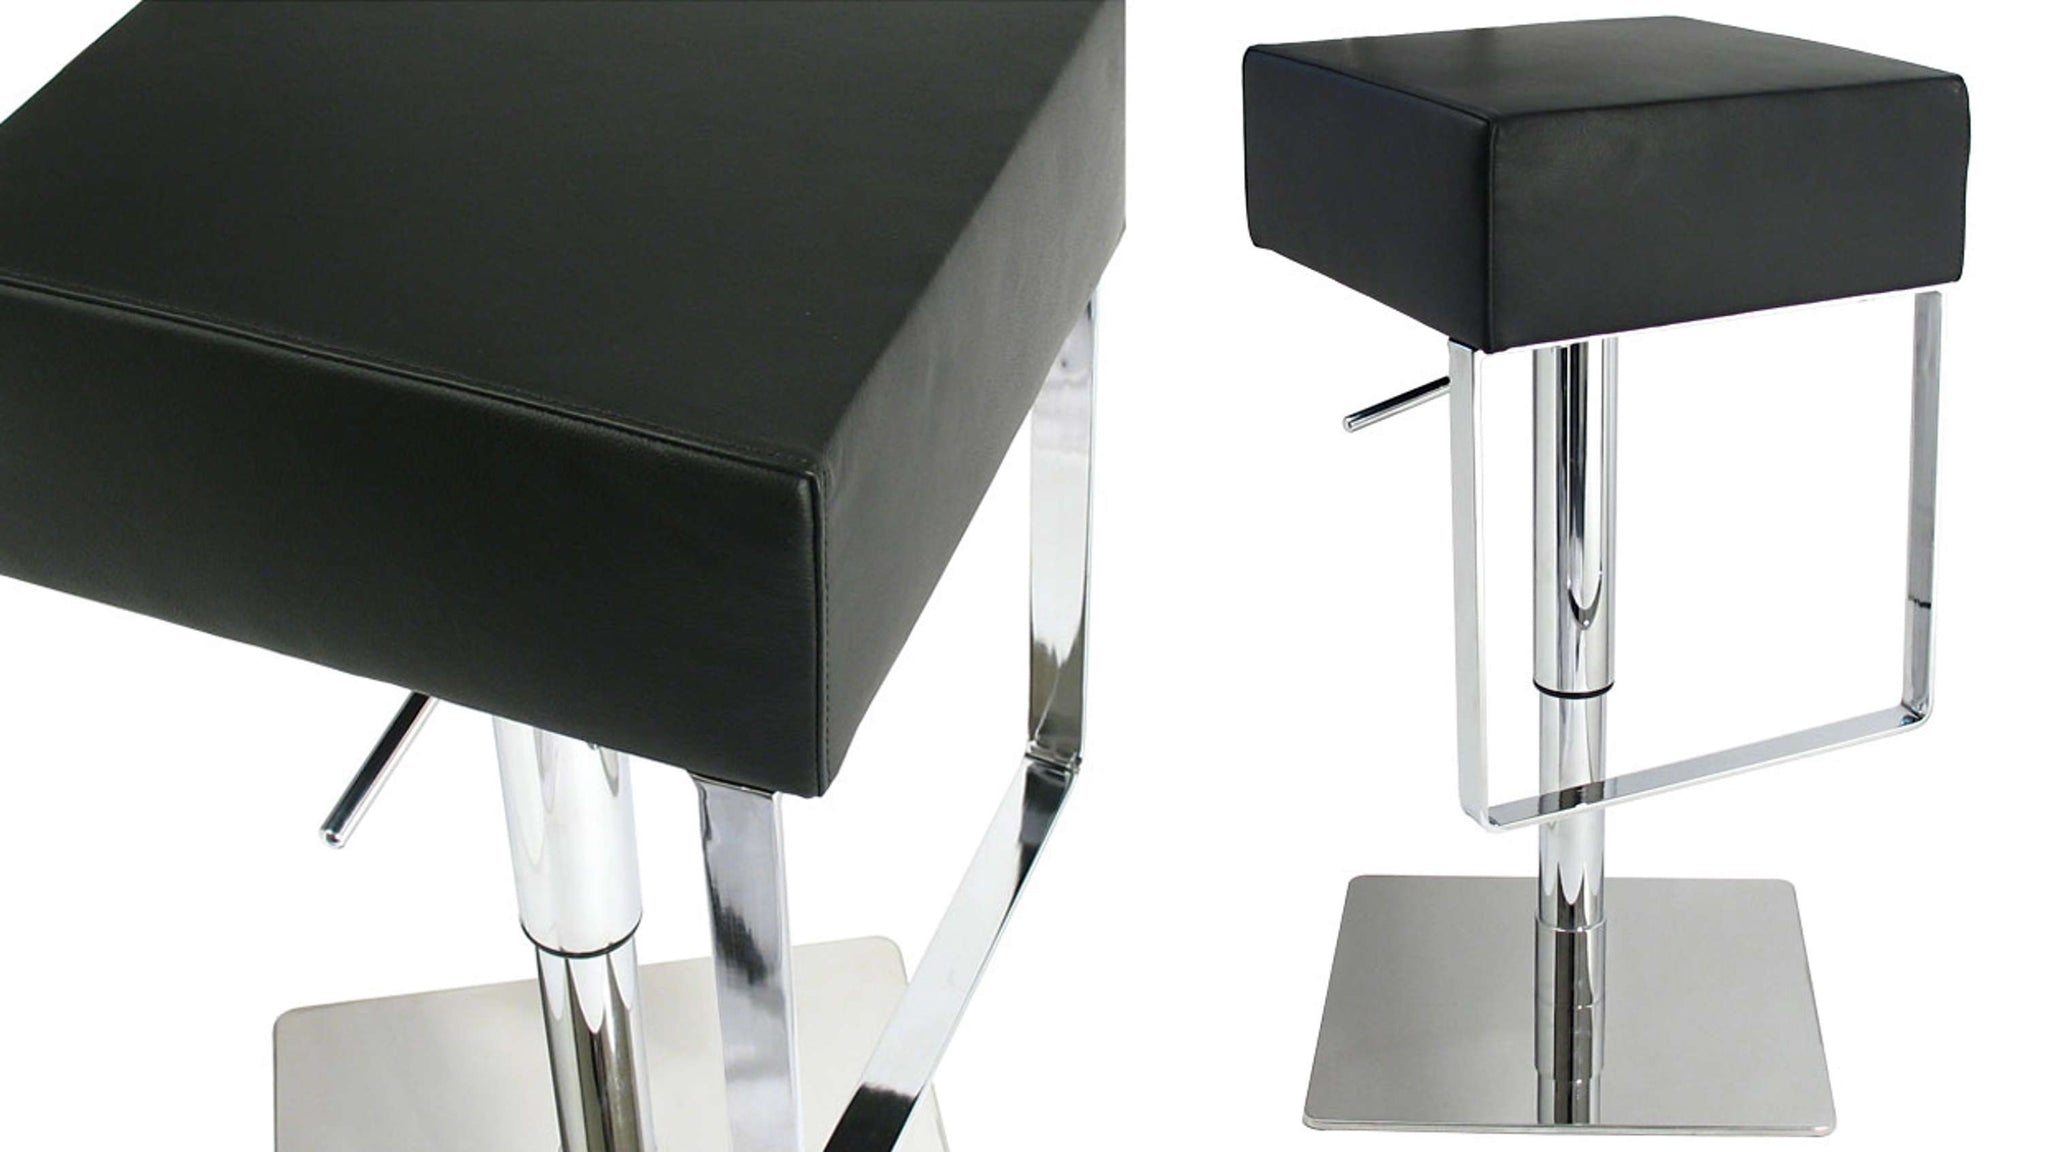 Contemporary Gas Lift Bar Stool in Black